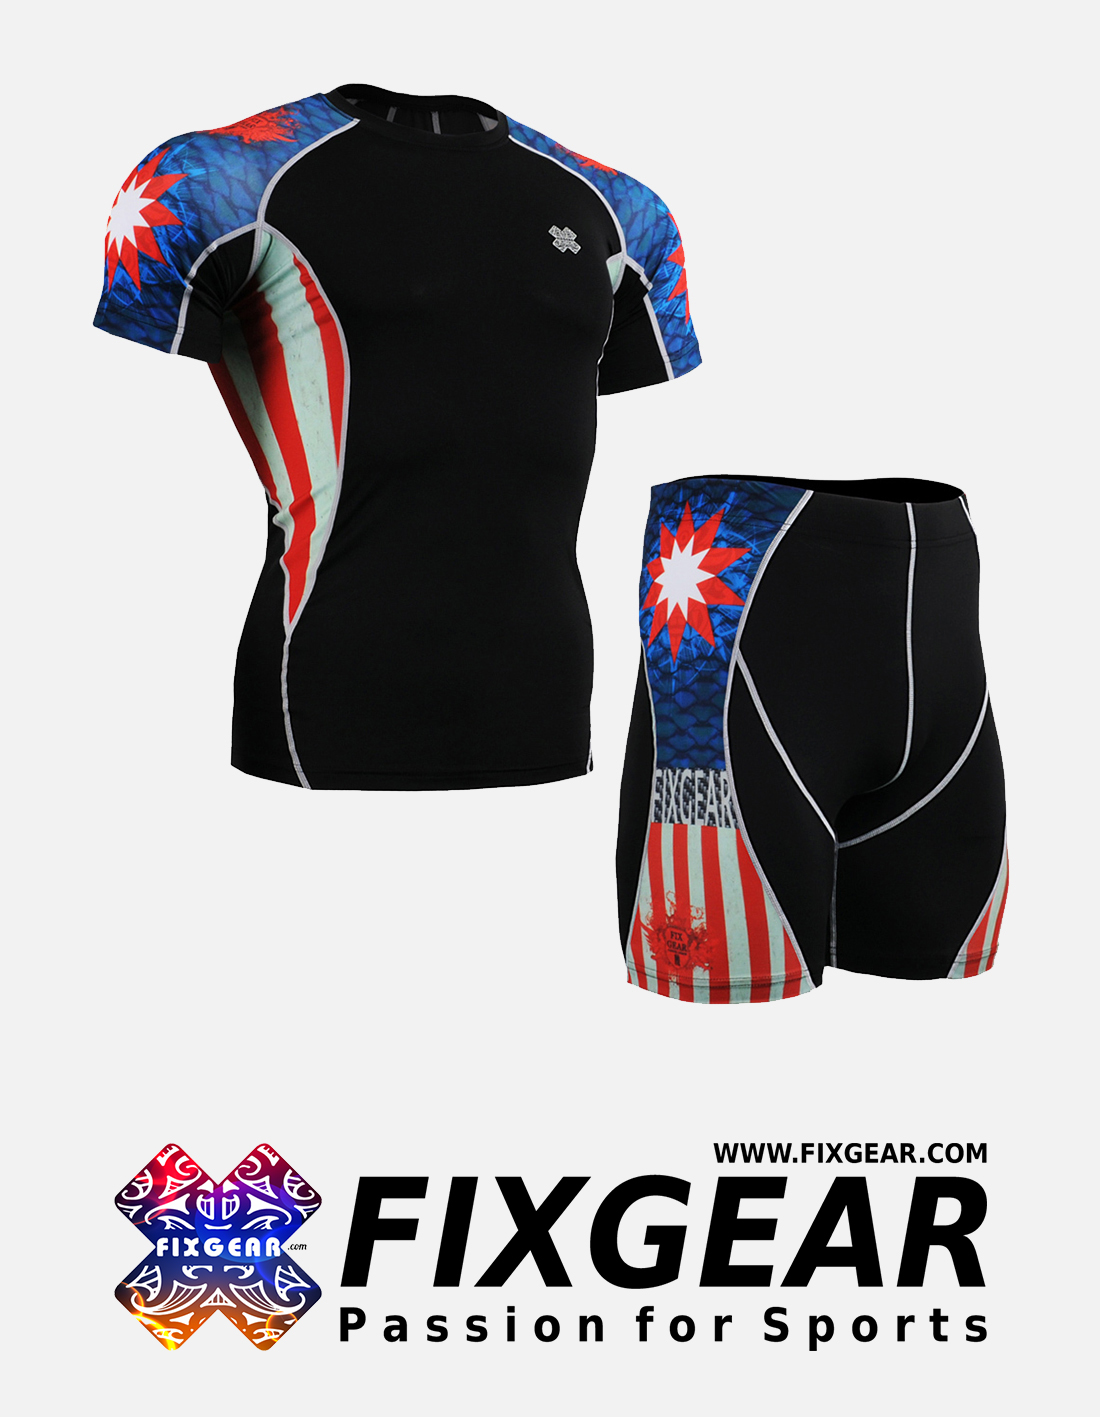 FIXGEAR C2S-P2S-B37 Set Compression Base Layer Shirt & Compression Drawer Shorts